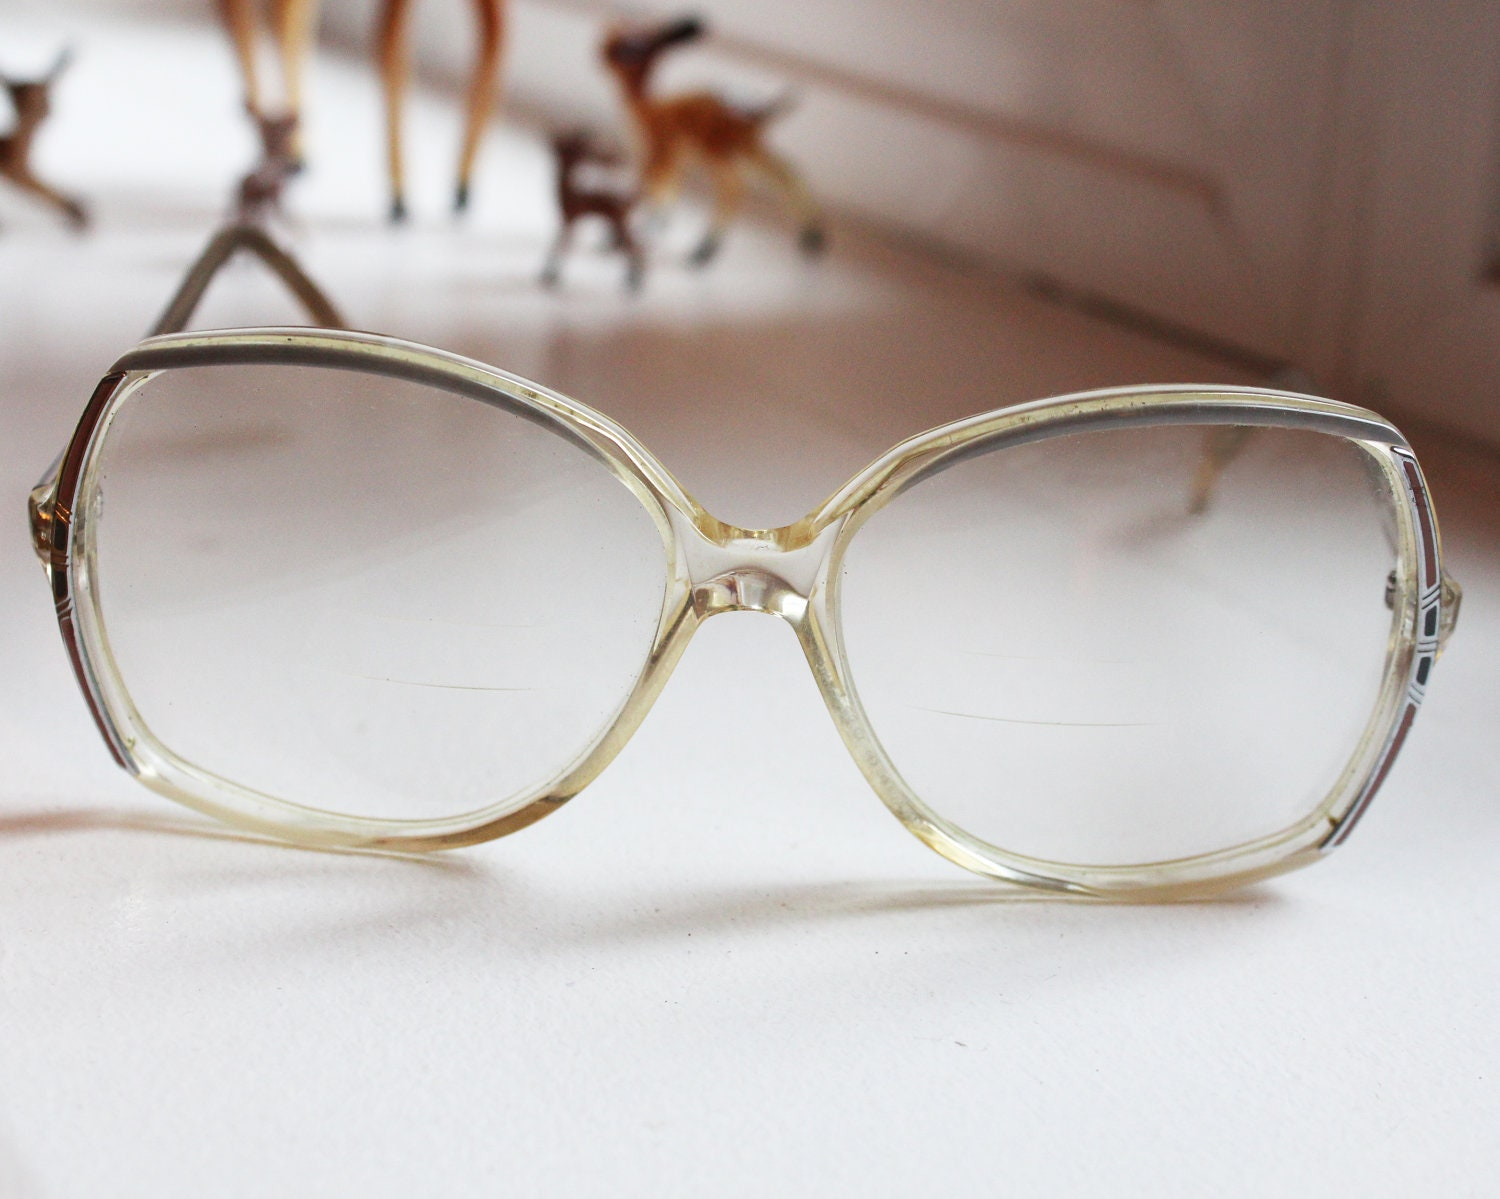 butterfly glasses frames images